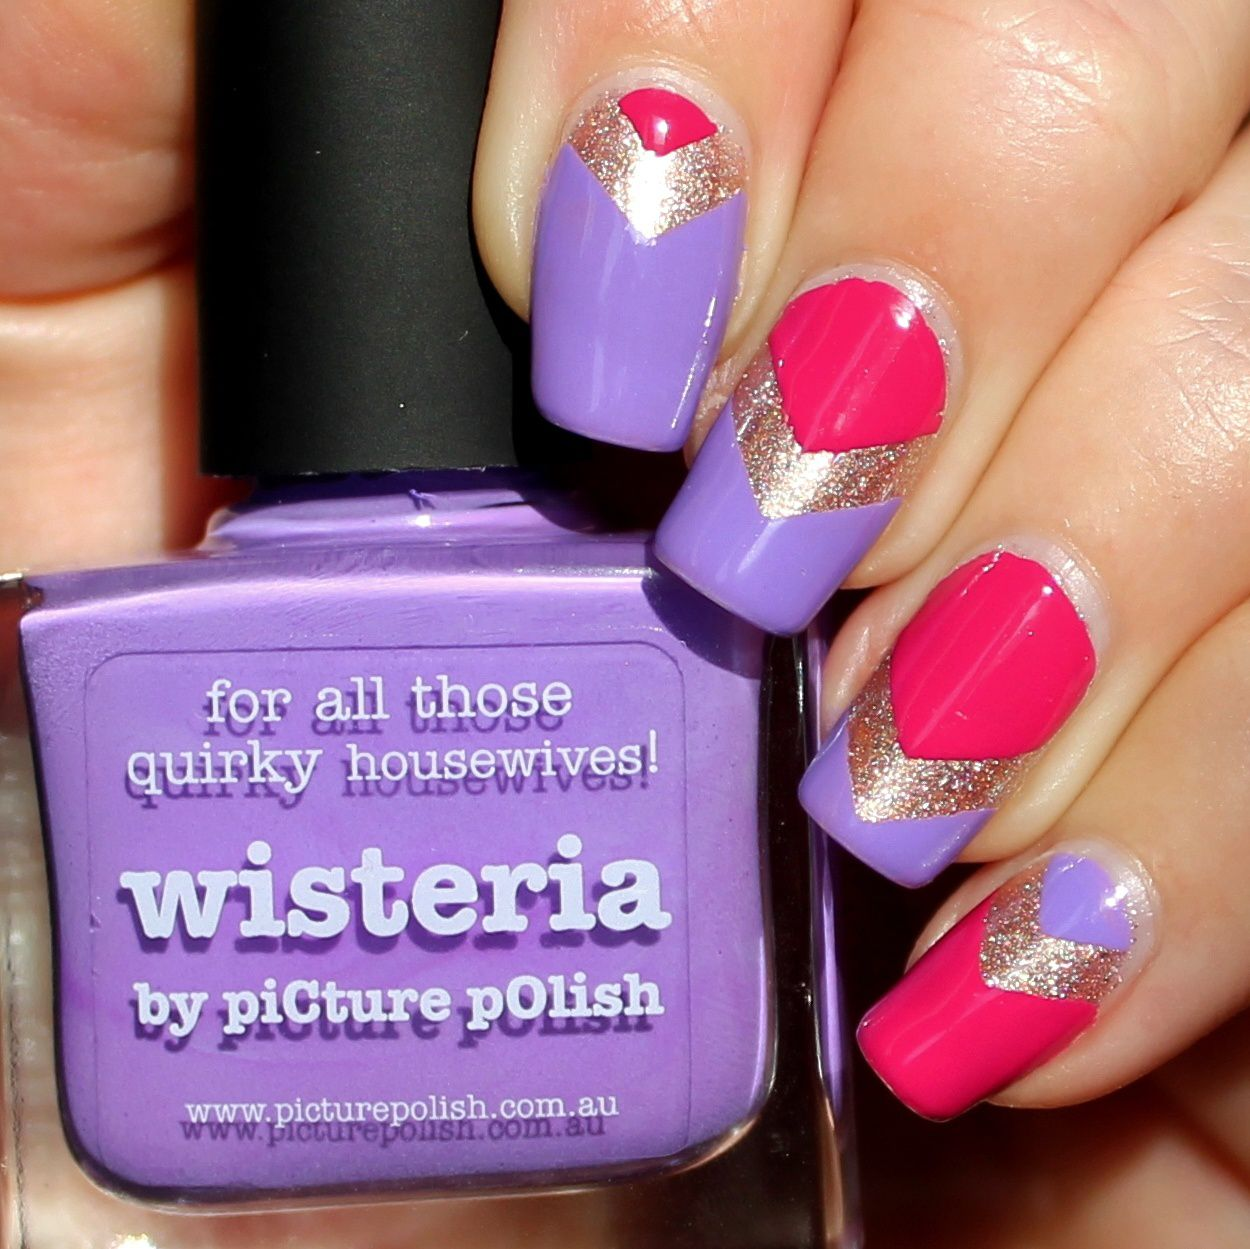 Duri Rejuvacote / Picture Polish Majesty, Wisteria & Flirt / Poshe Top Coat